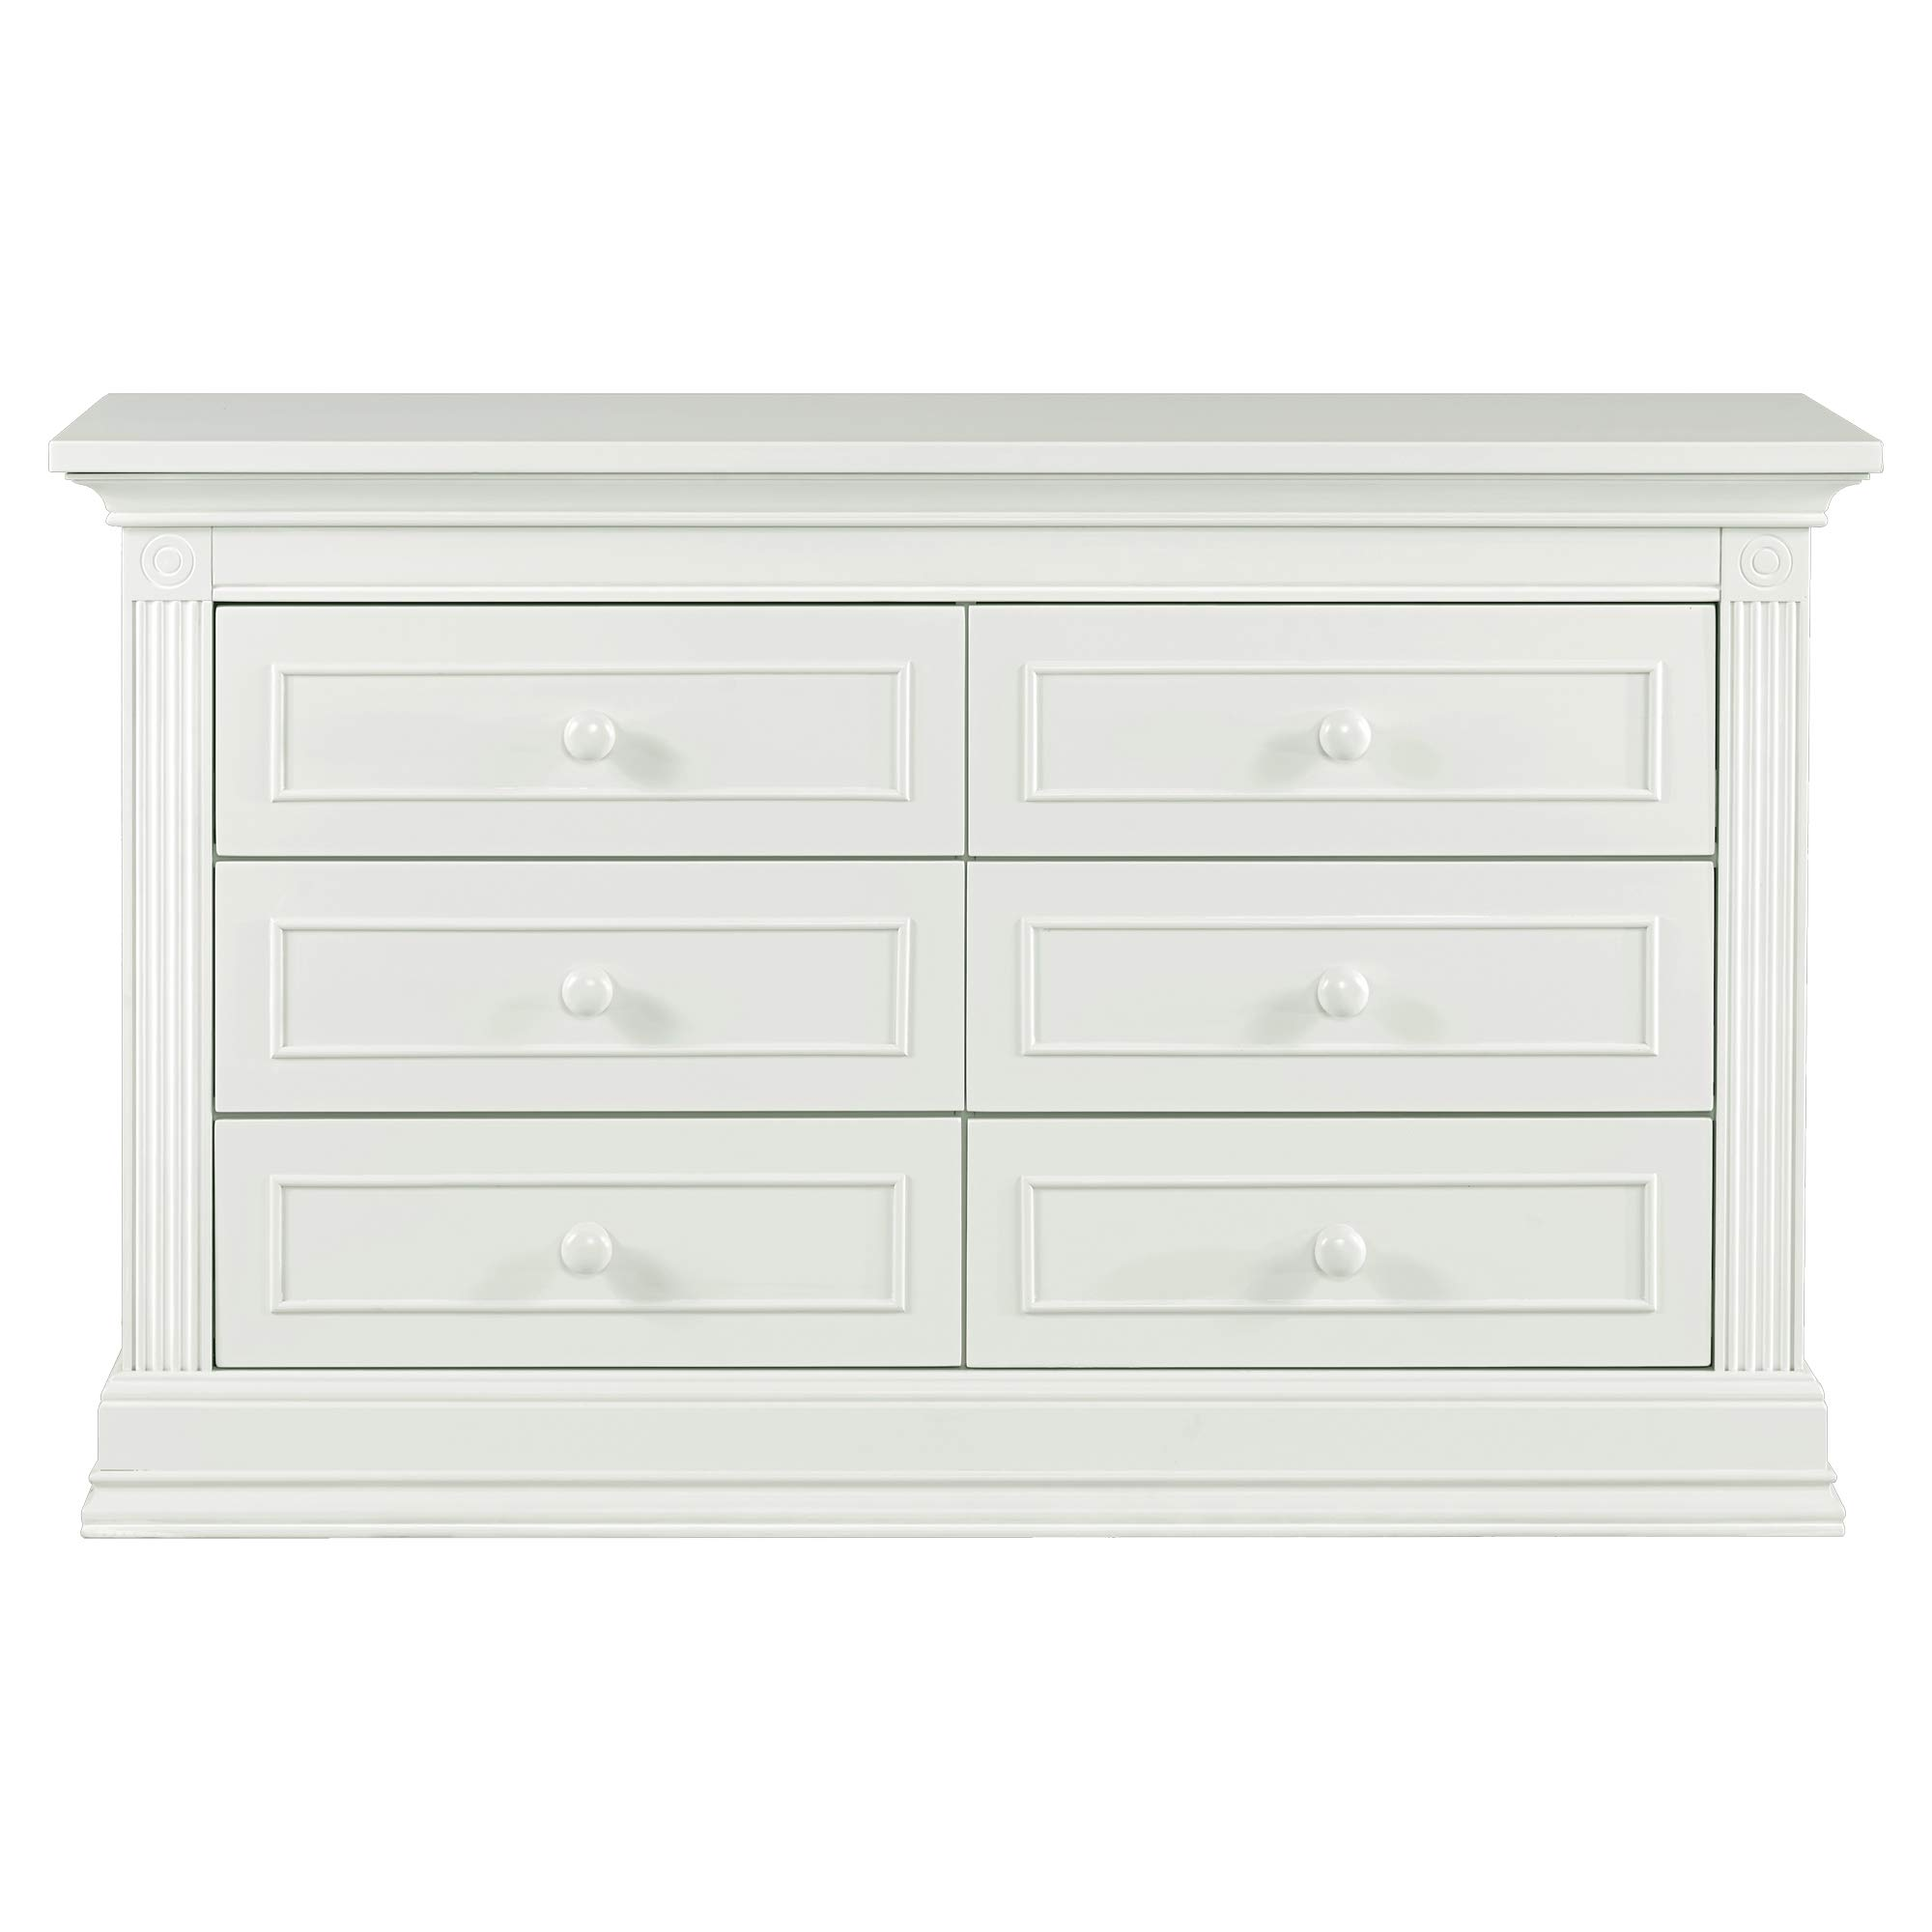 Montana Collection Natural Hardwood 6 Drawer Dresser | Lasting Quality & Design | Kiln-dried & Hand-Crafted Construction | 56'' x 18.5'' x 34'', Glazed White by Baby Cache